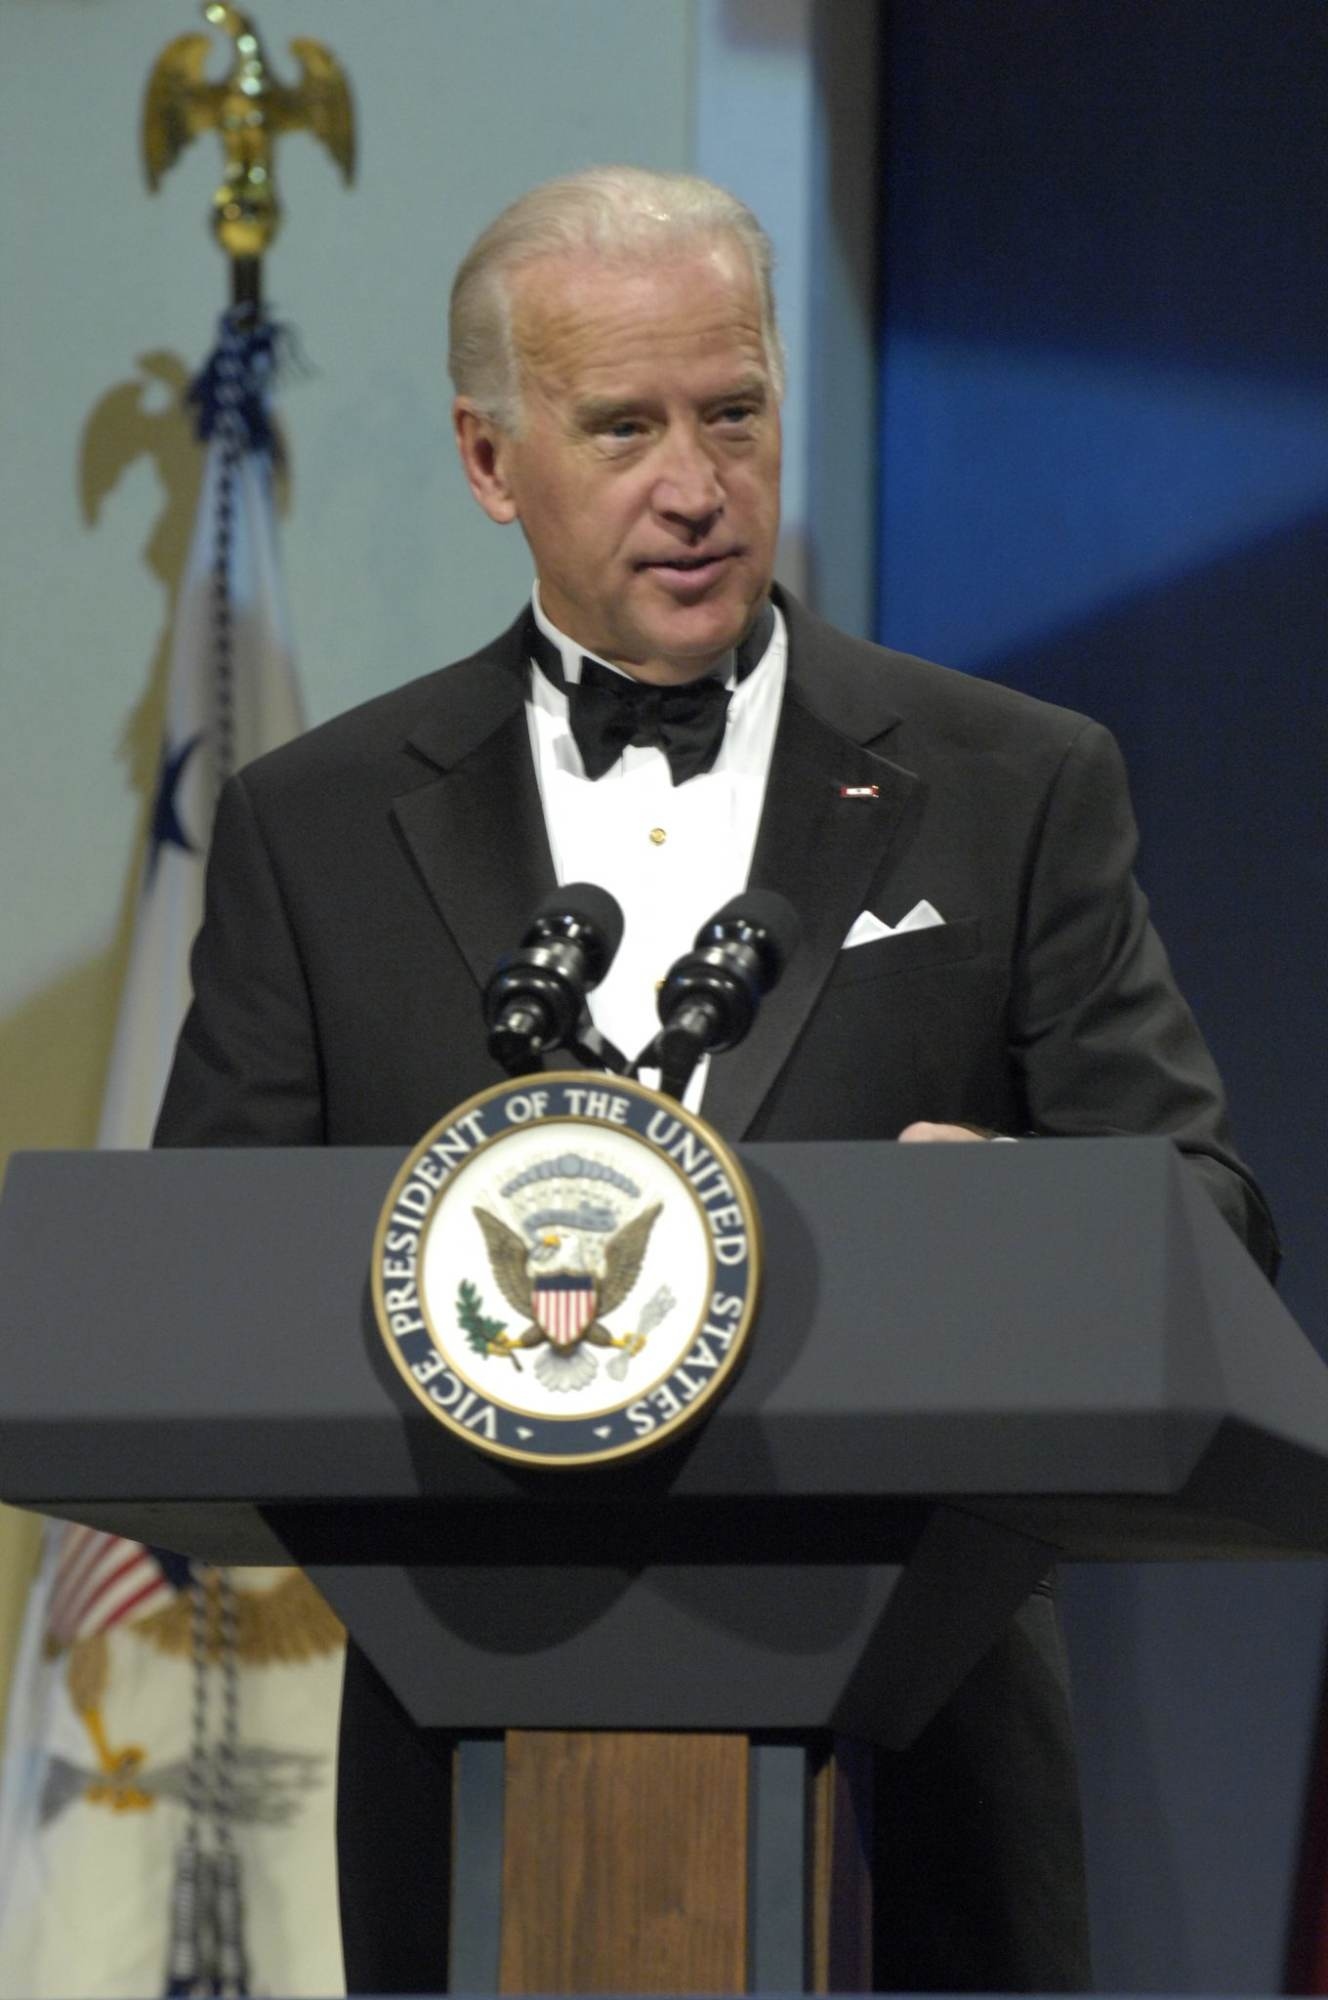 Potential Biden Opponents Offer Support for His Accuser